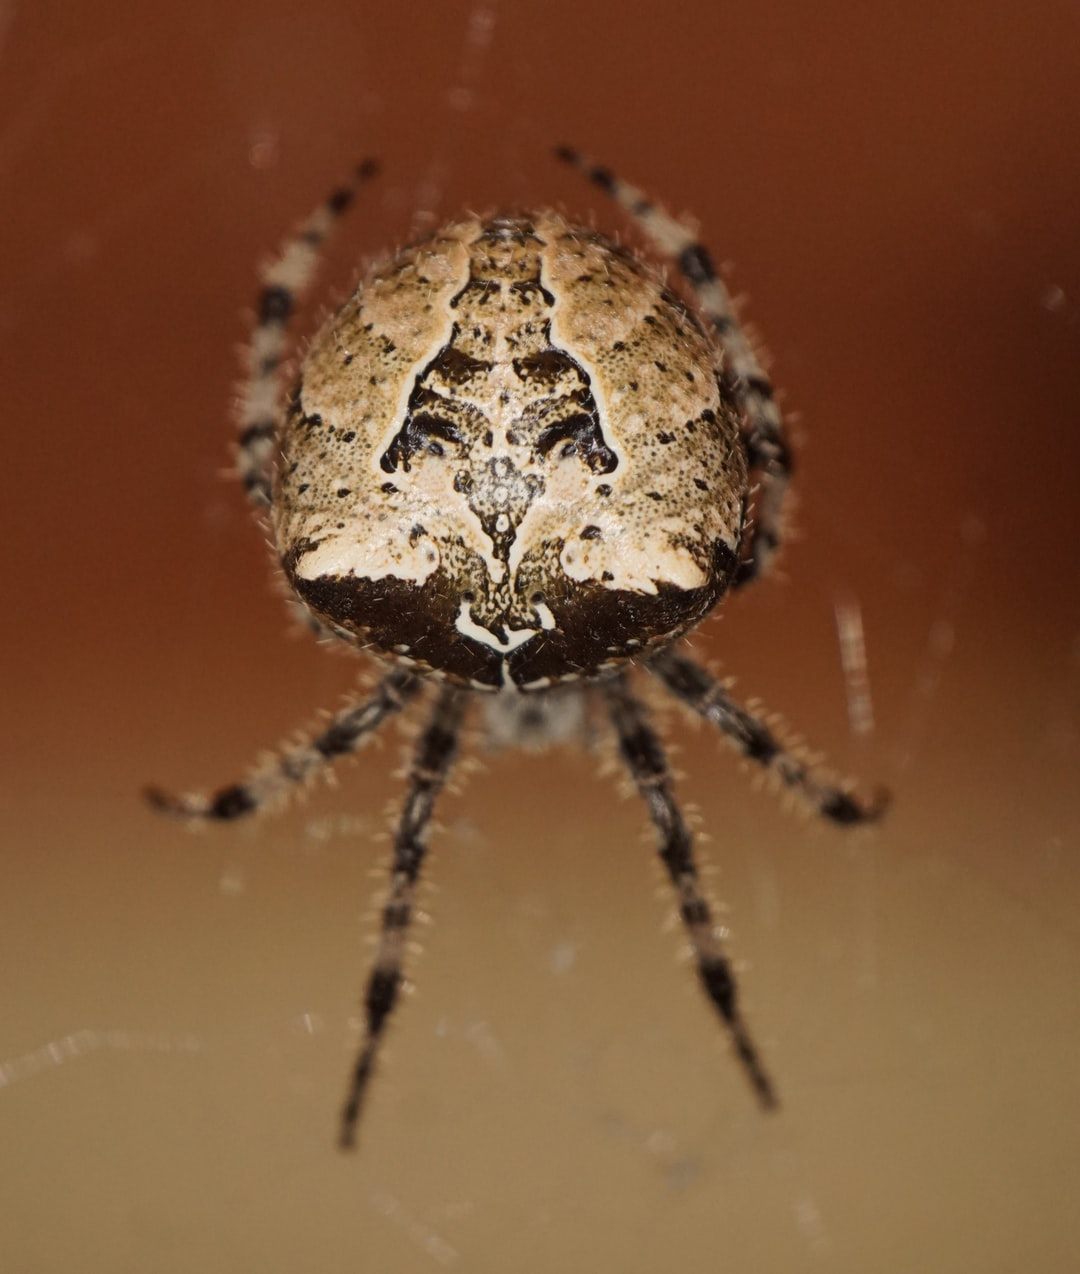 The markings on the cat-faced spider are intricate and eye-catching. I used a flash for this at dusk, as they keep themselves hidden during the daylight.